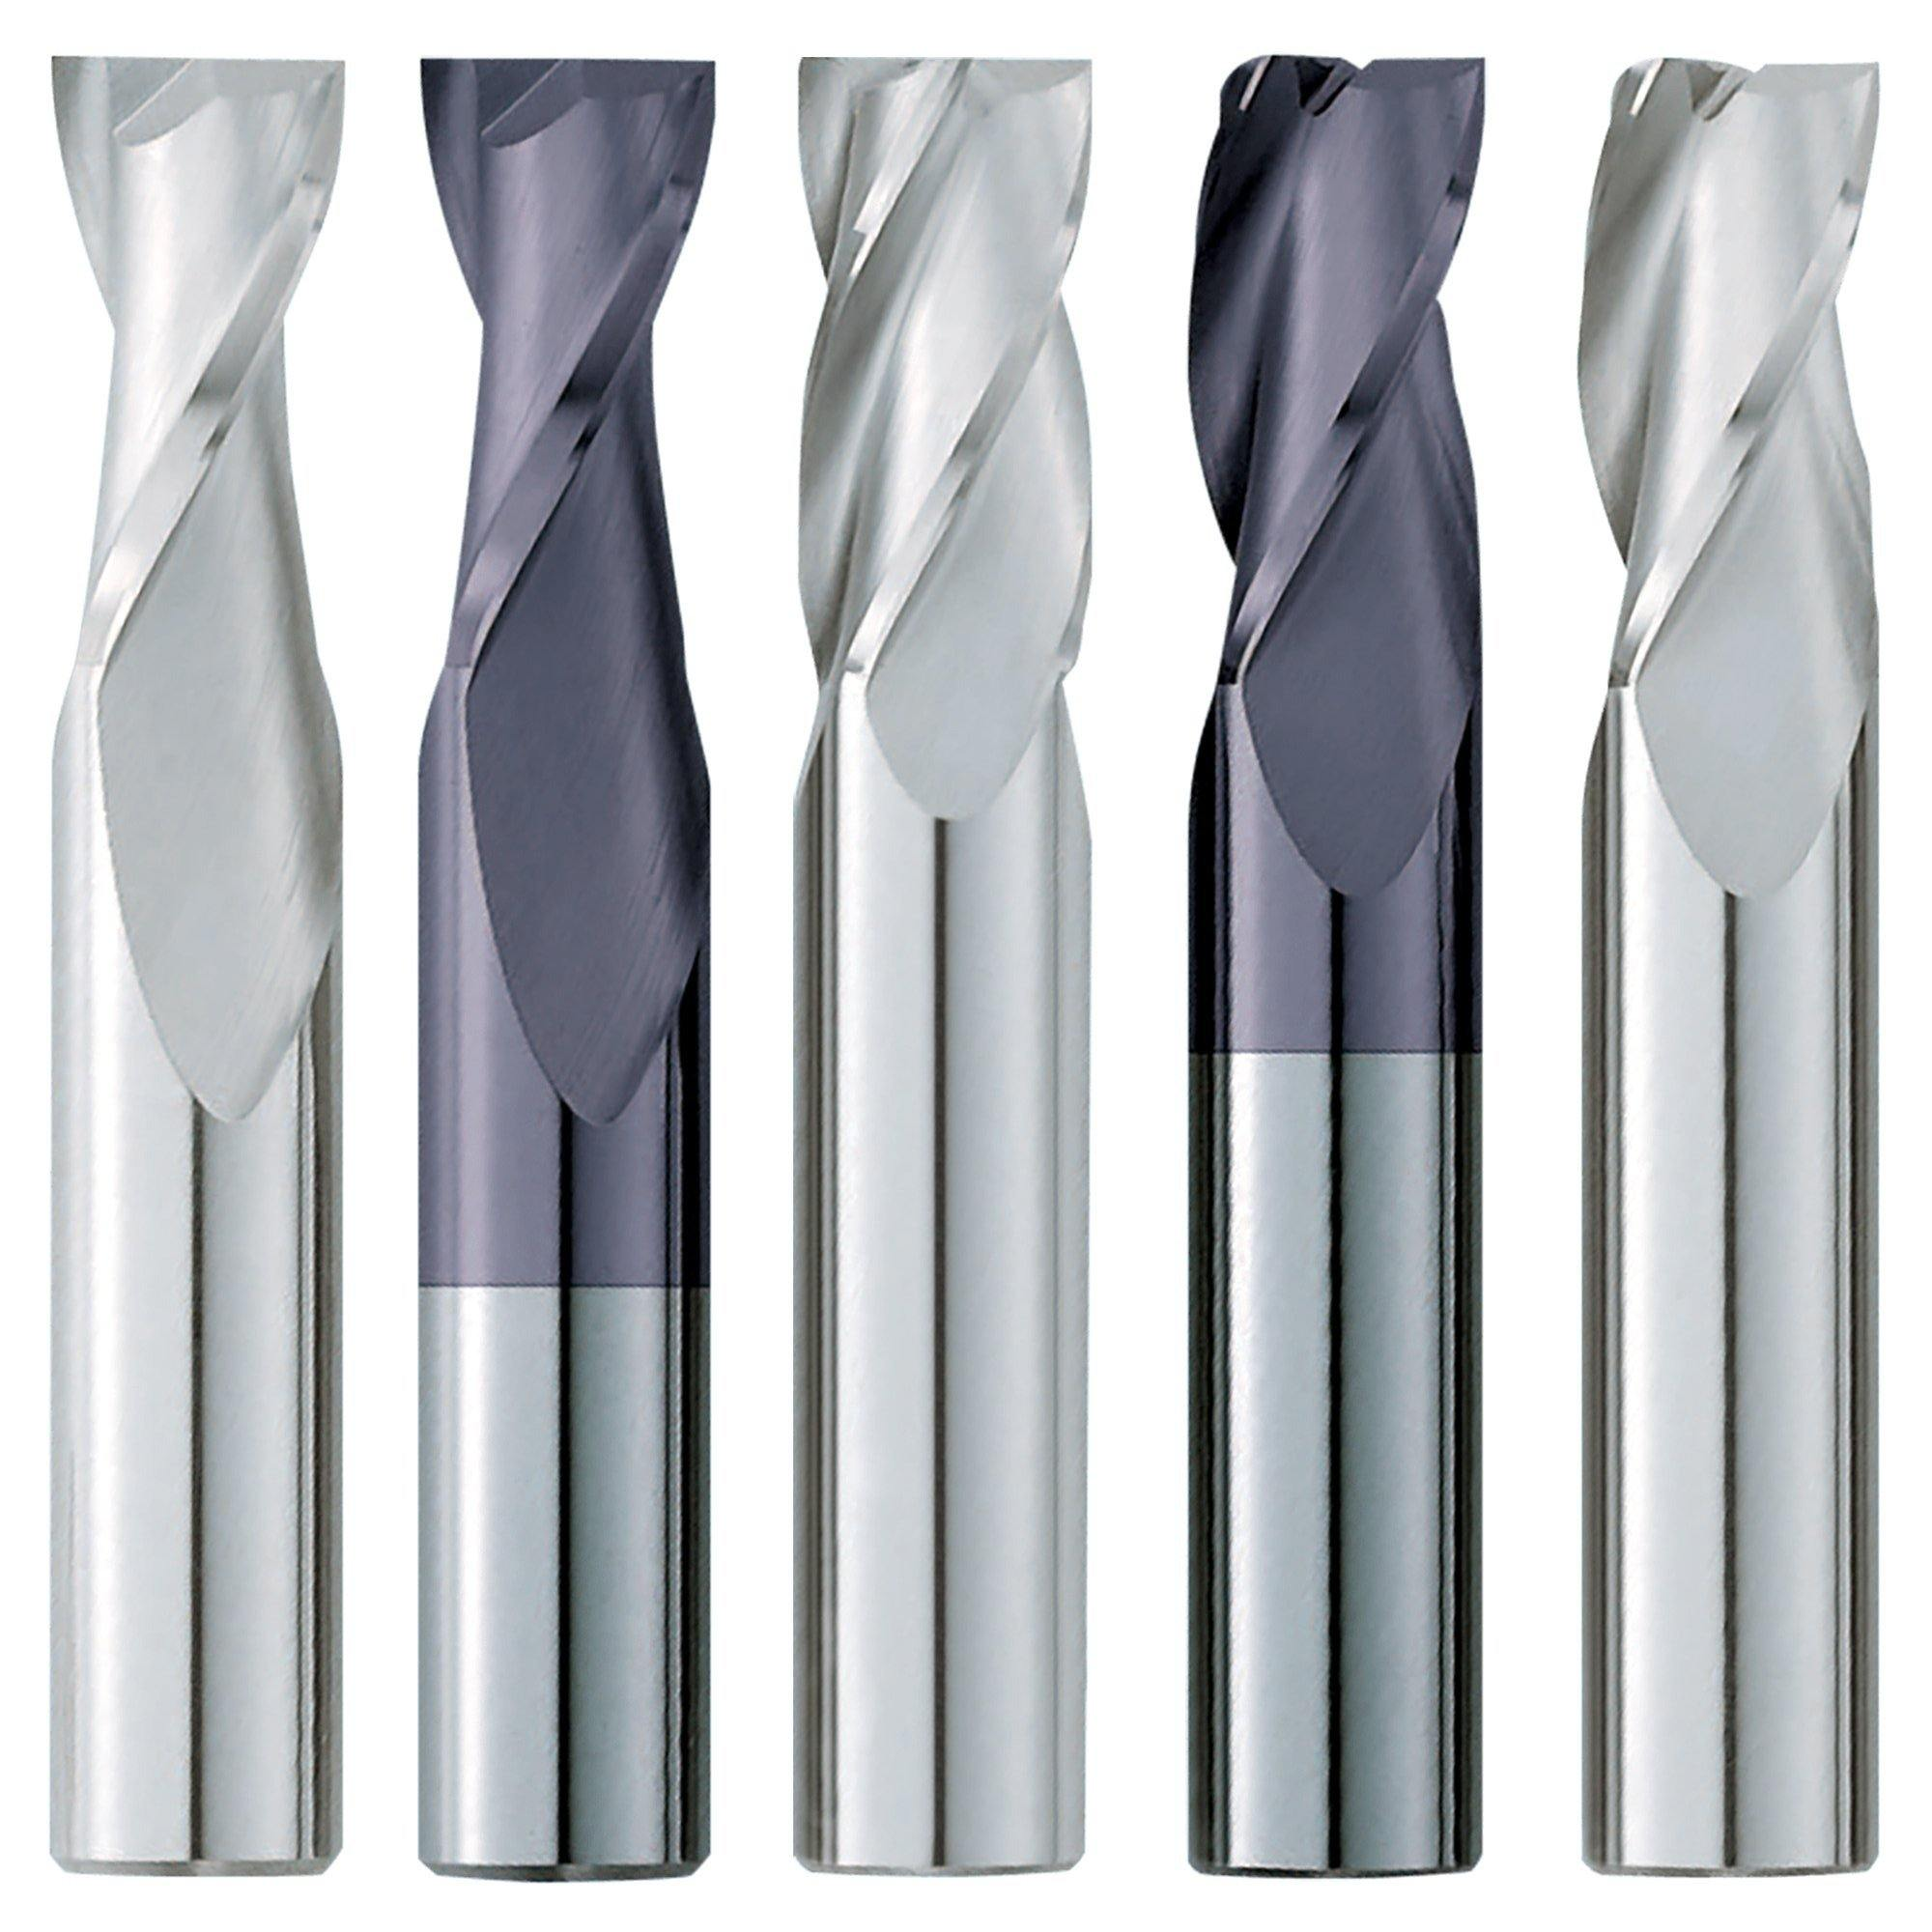 "(5 Pack) 1/2"" x 1"" x 3"" Standard Square Carbide End Mill - End Mill Store"